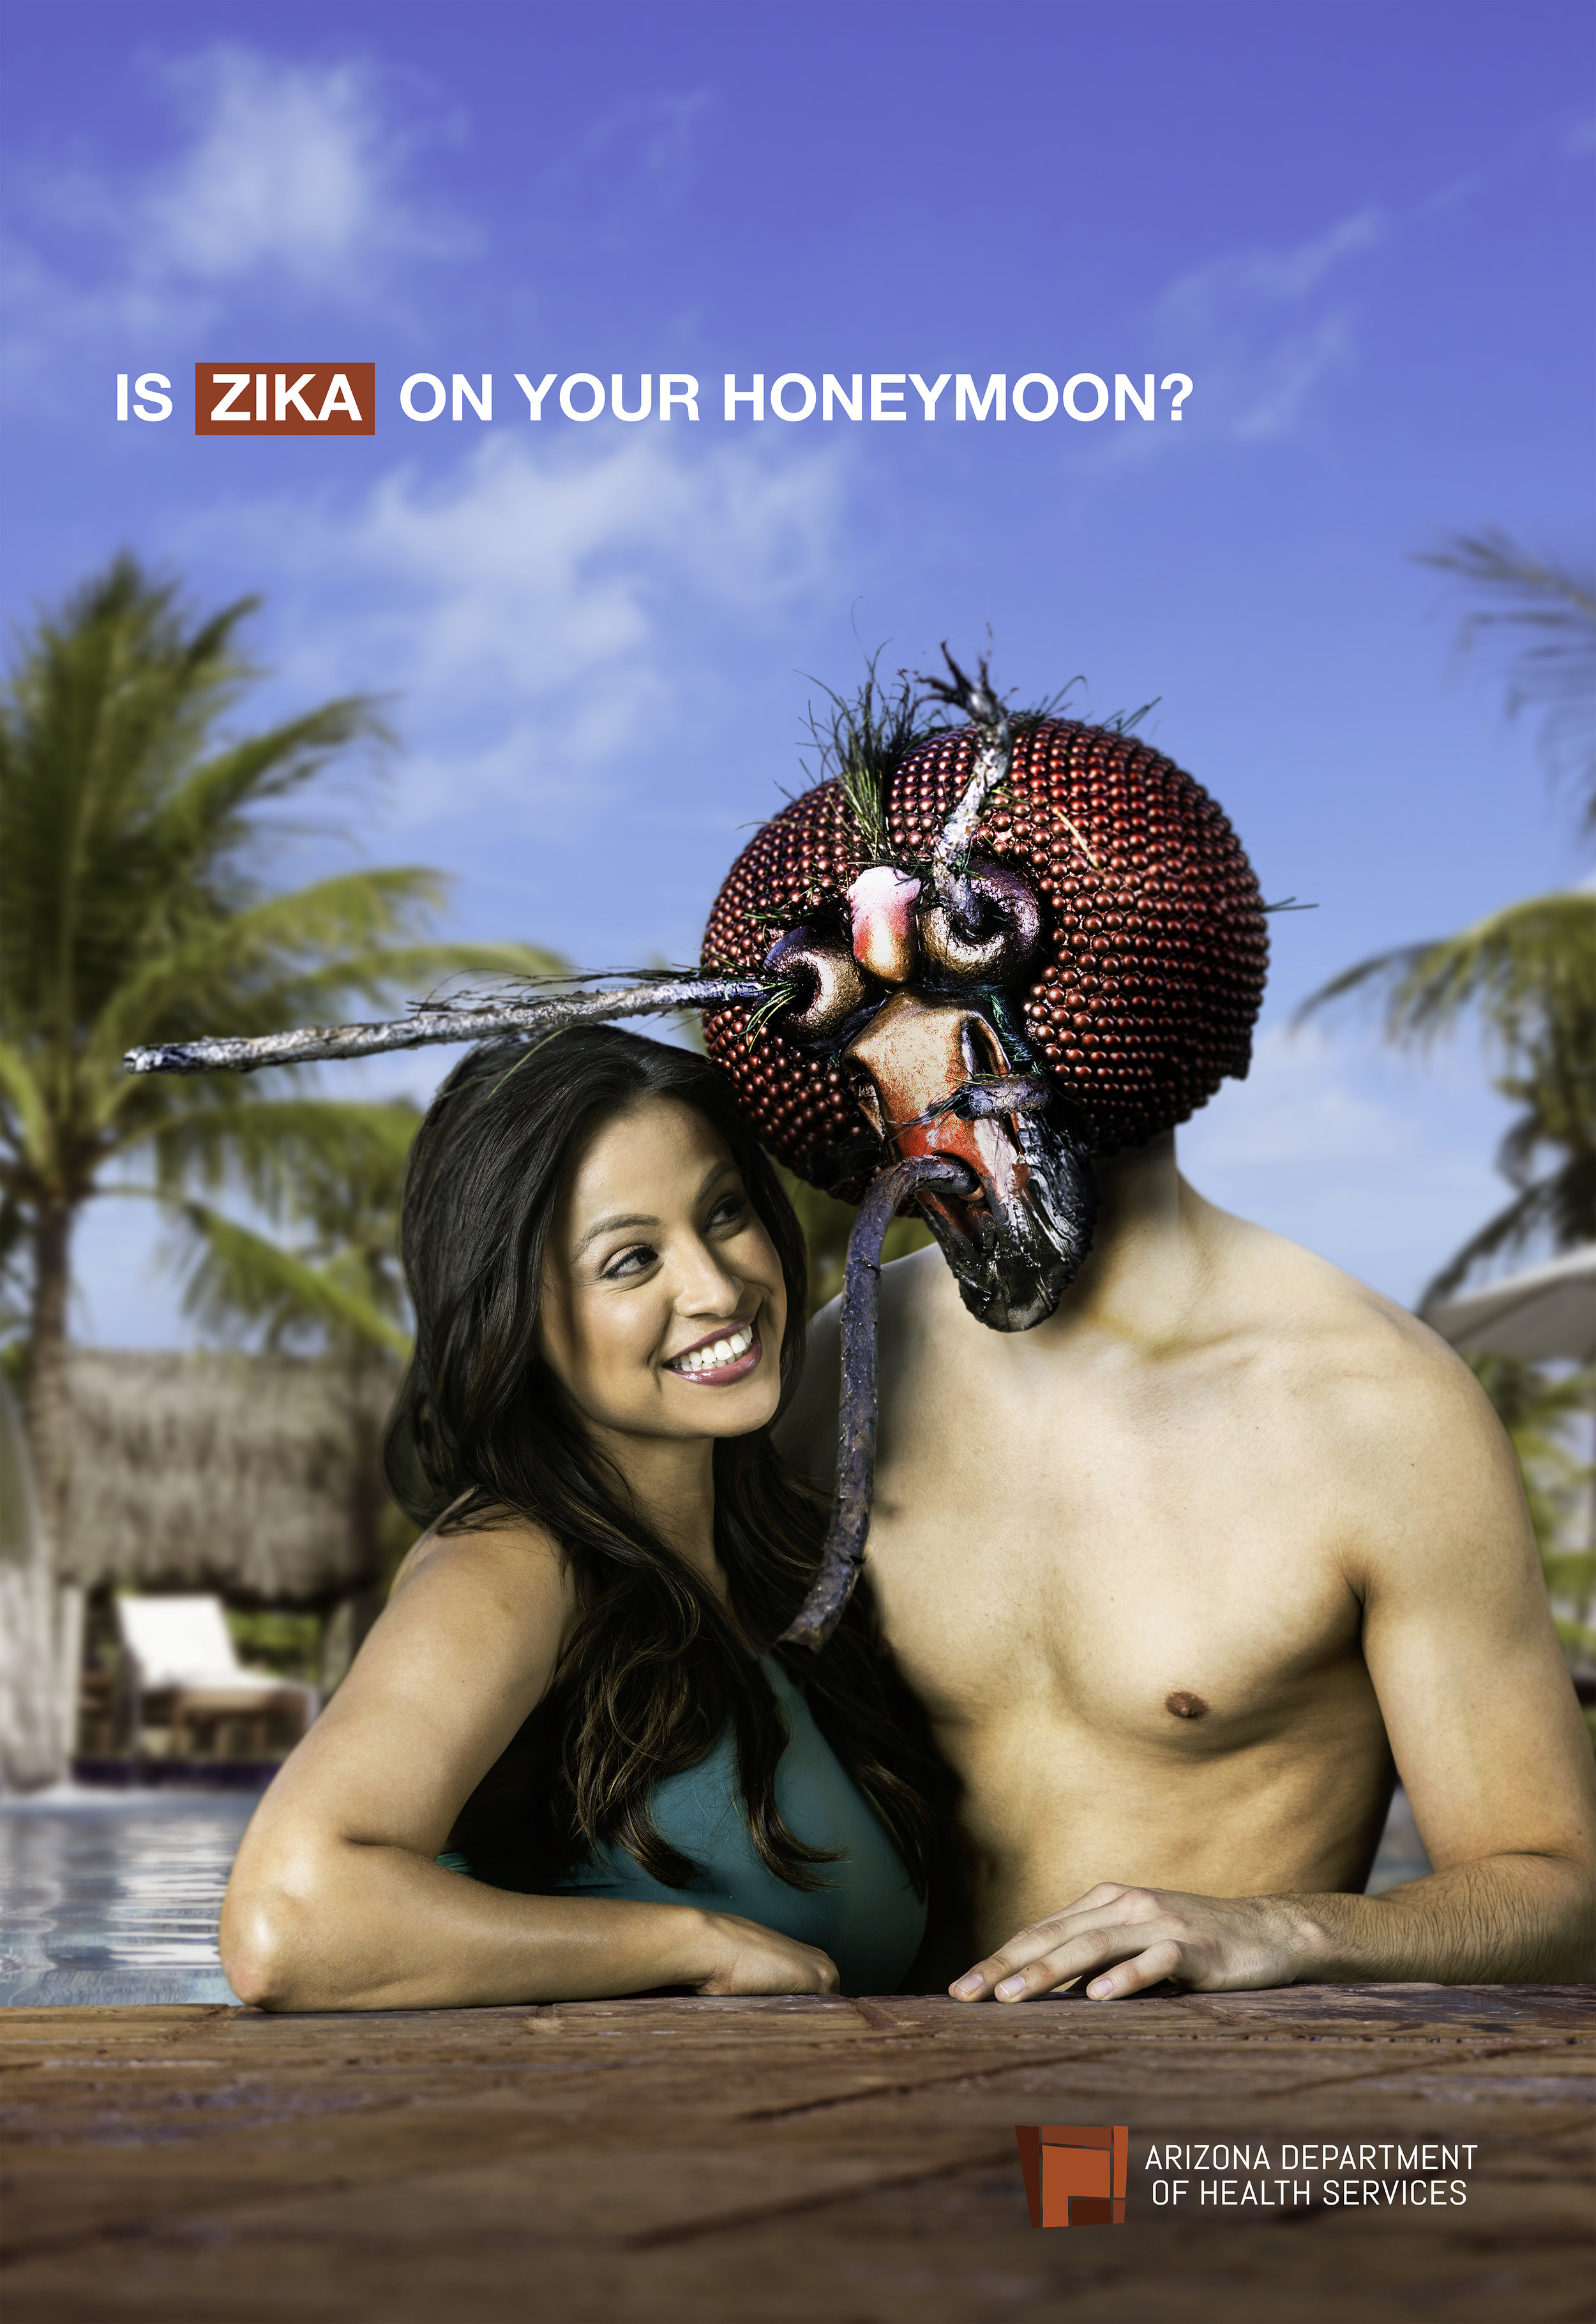 zika-unbranded-honeymoon-vertical.jpg